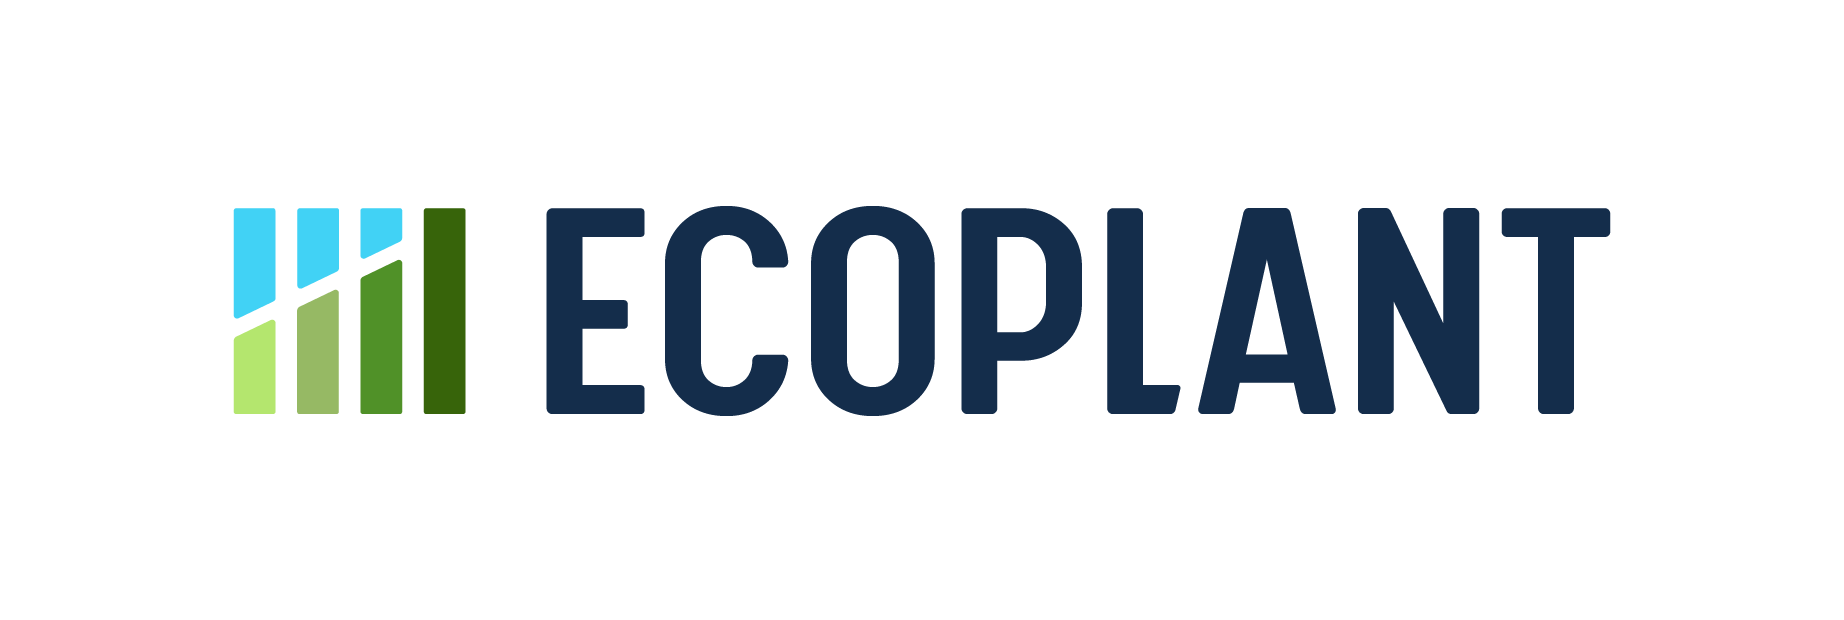 Ecoplant Positive Full Color